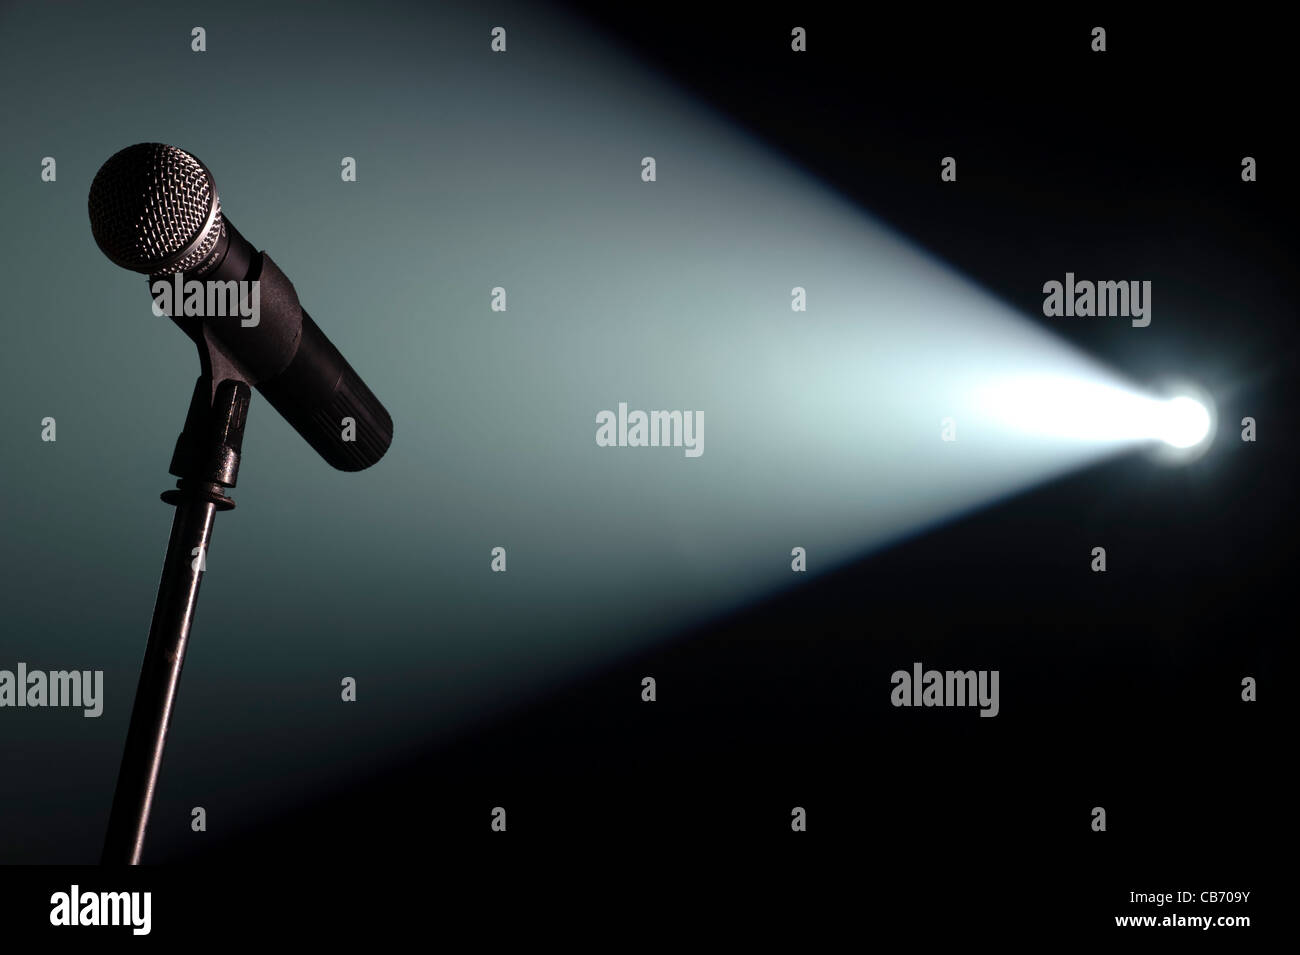 Mic Stand Stage Stock Photos & Mic Stand Stage Stock Images - Alamy